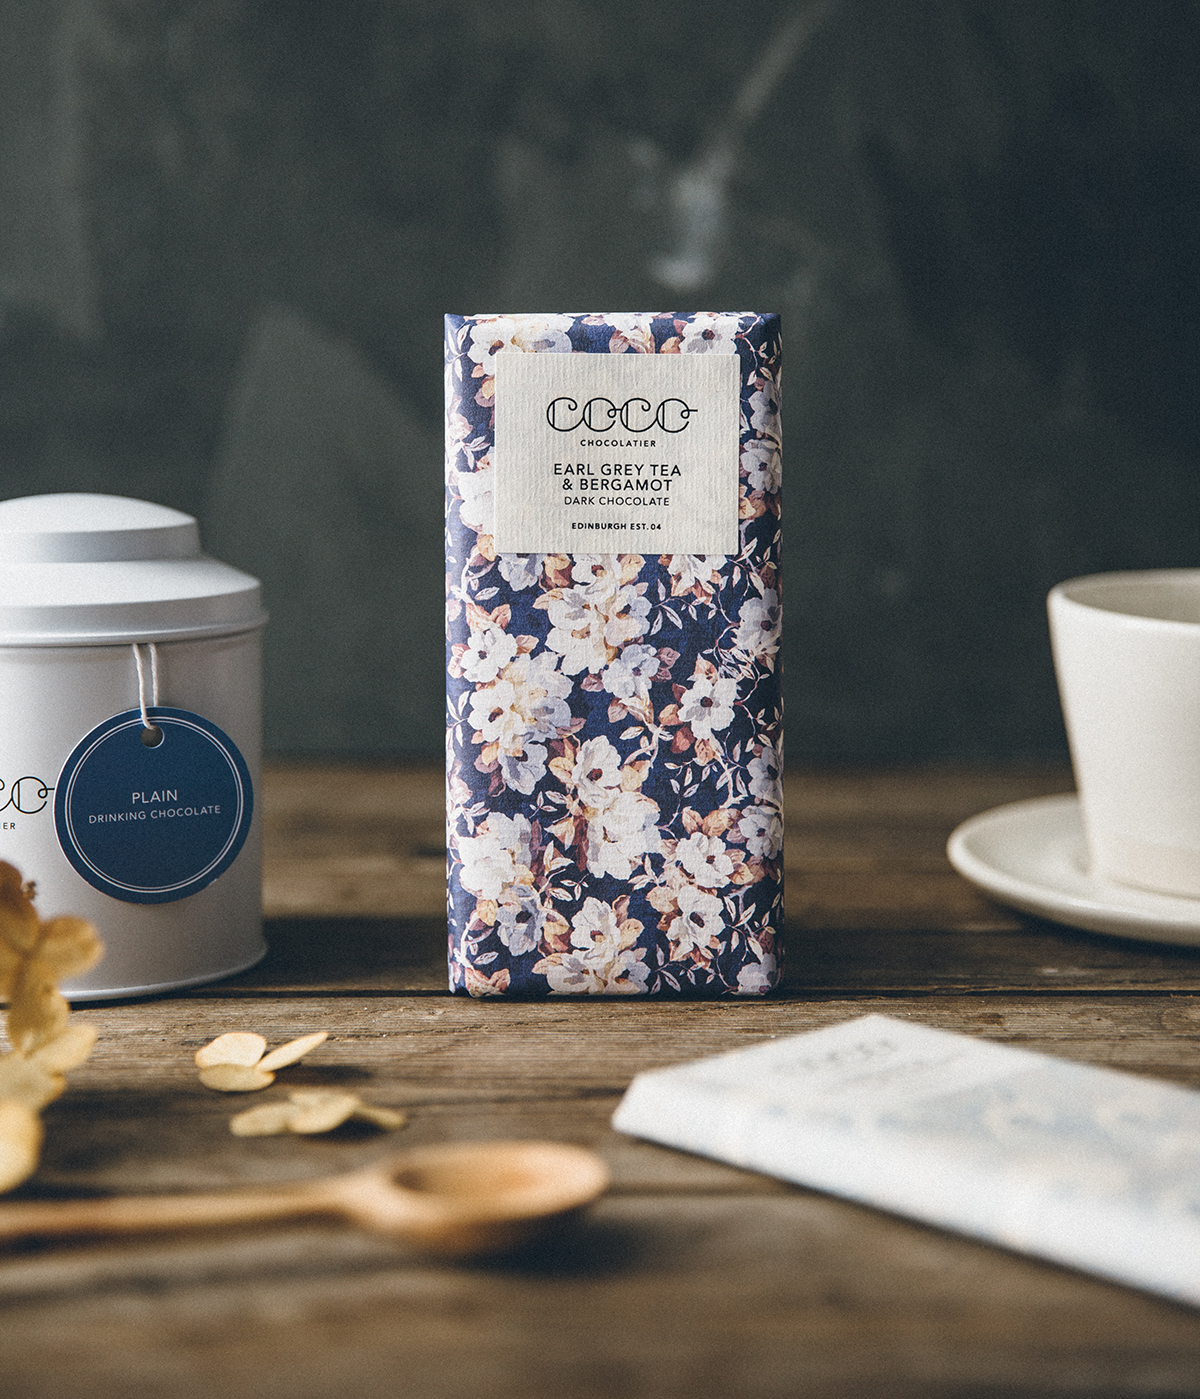 Earl Grey Tea & Bergamot Dark Chocolate,  The Future Kept , £4.50    Crafted by Coco Chocolatier in Edinburgh, this bar is beautiful inside and out.